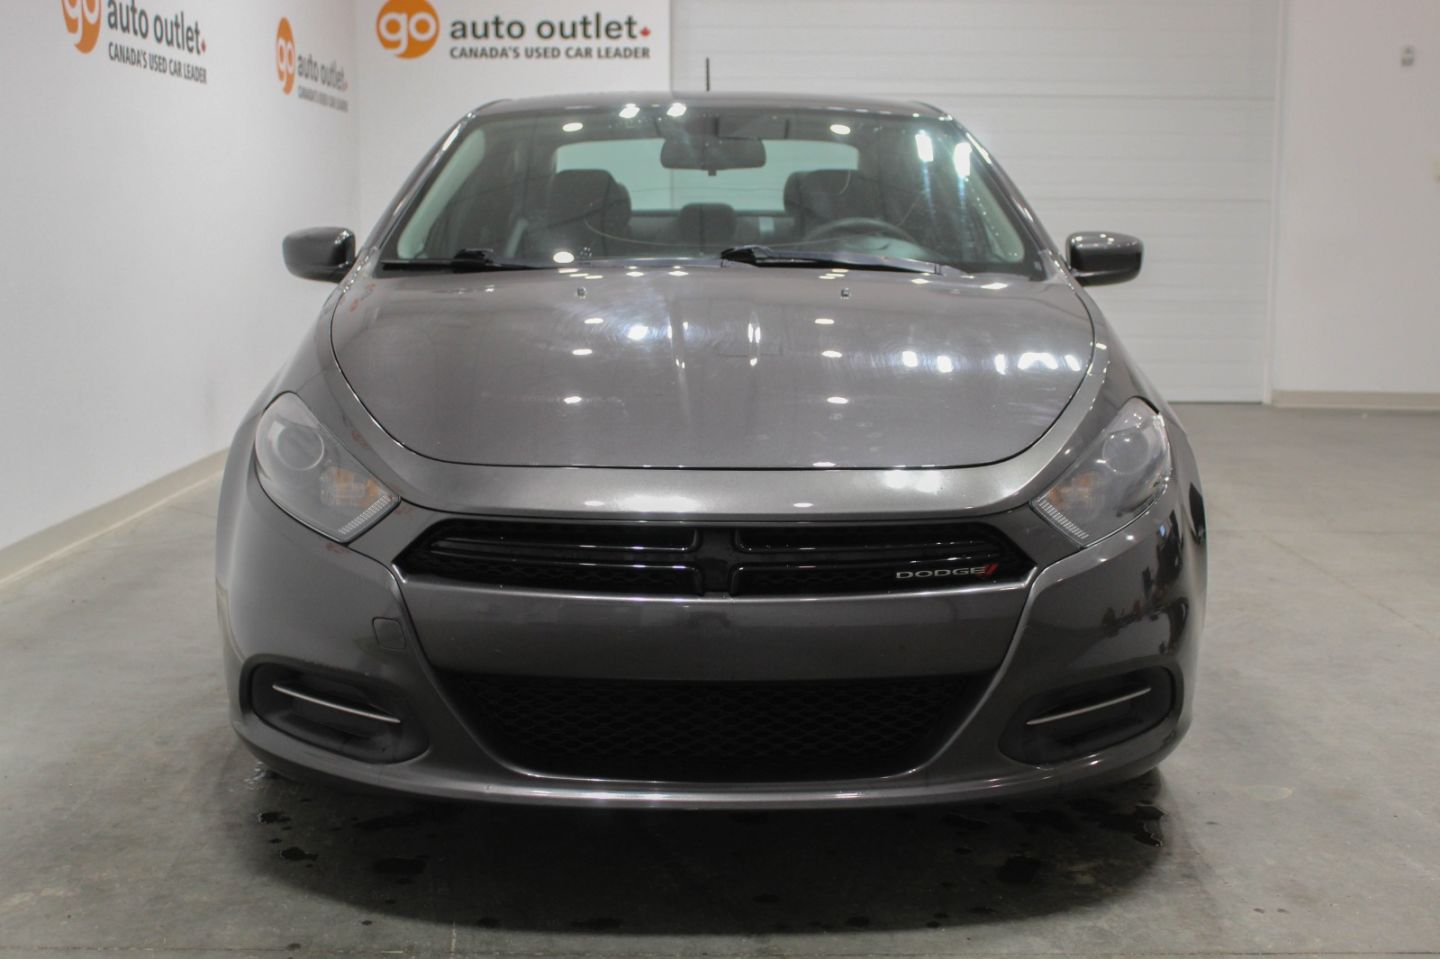 2015 Dodge Dart SXT for sale in Edmonton, Alberta